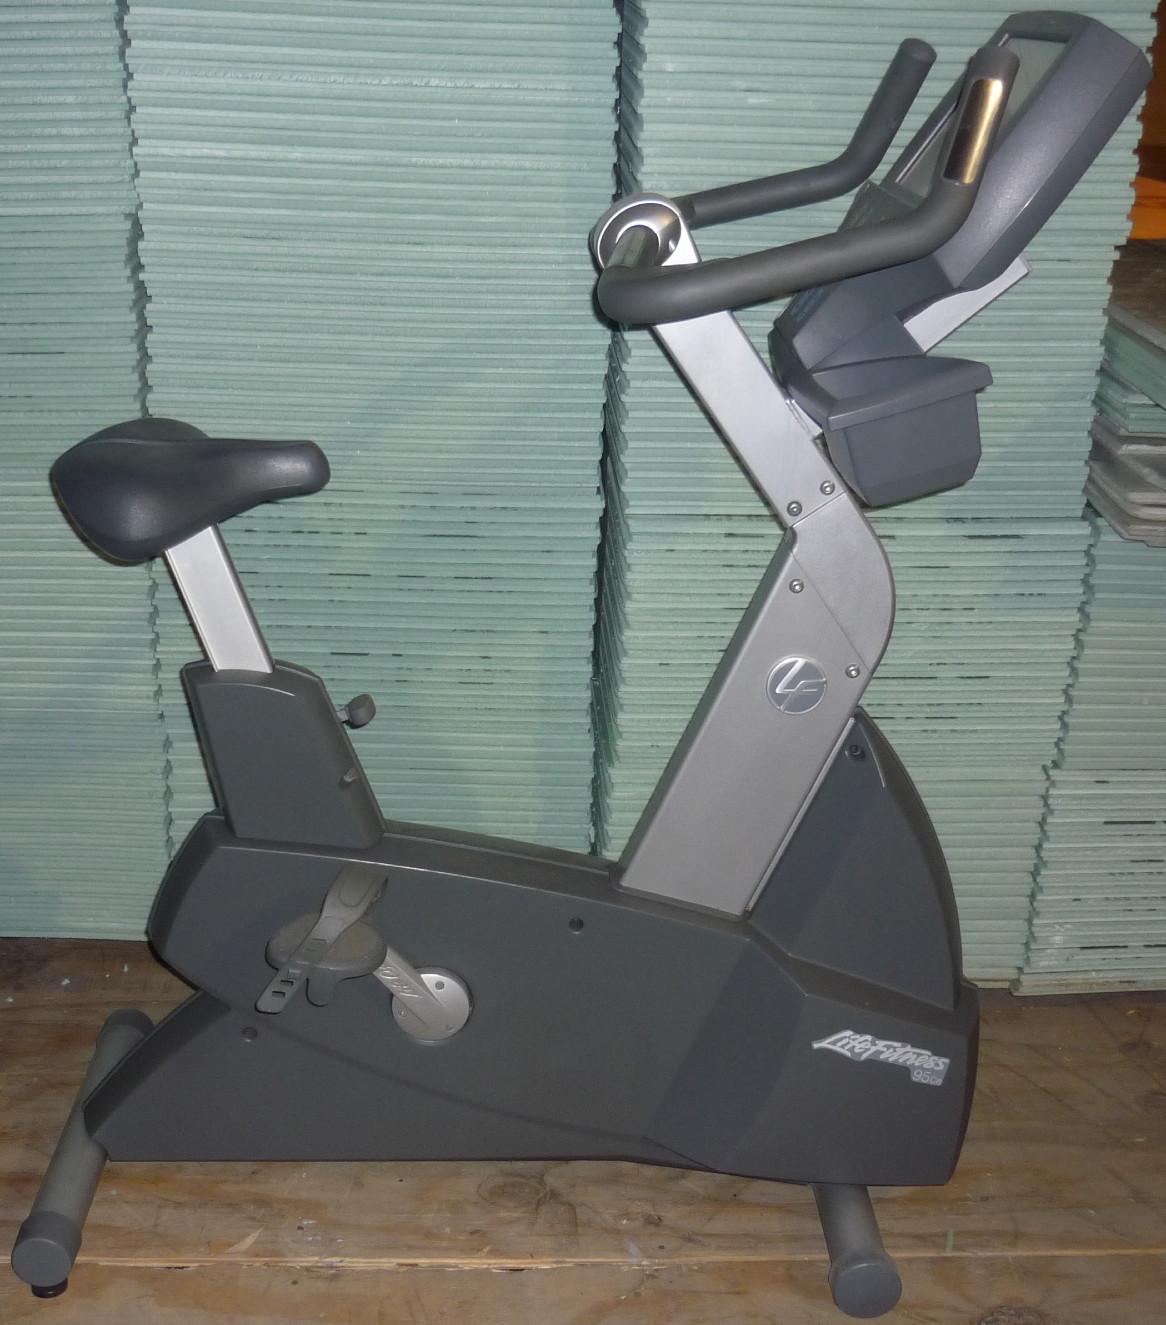 Used Pilates Equipment For Sale In Los: Used Fitness Equipment North Vancouver 411, Used Gym